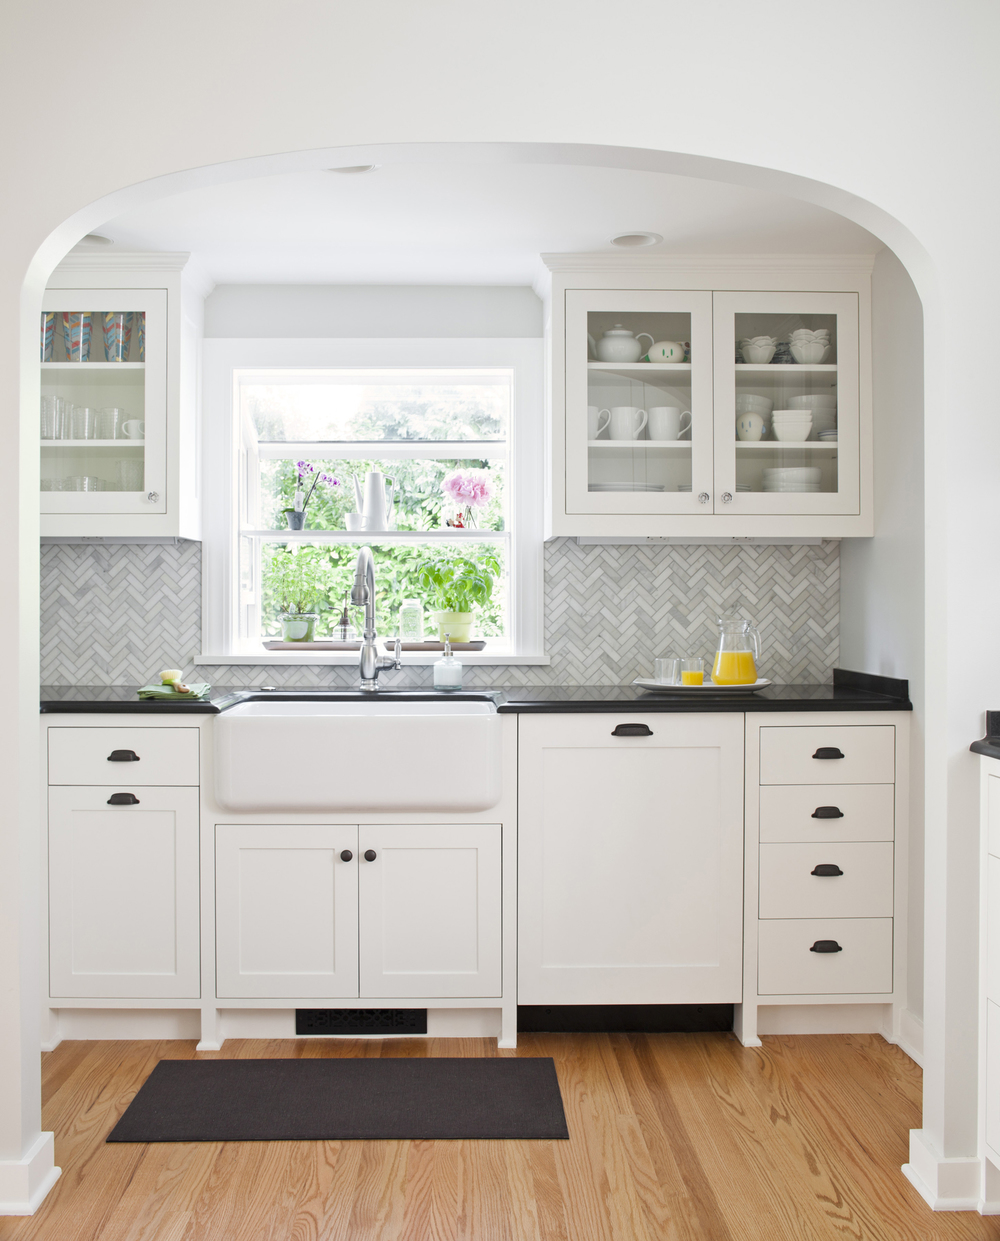 White tudor apron - Major Renovation To Previously Untouched 1931 Tudor Including This Kitchen Which Received A Rex Award For Remodeling Excellence By The Master Builder S